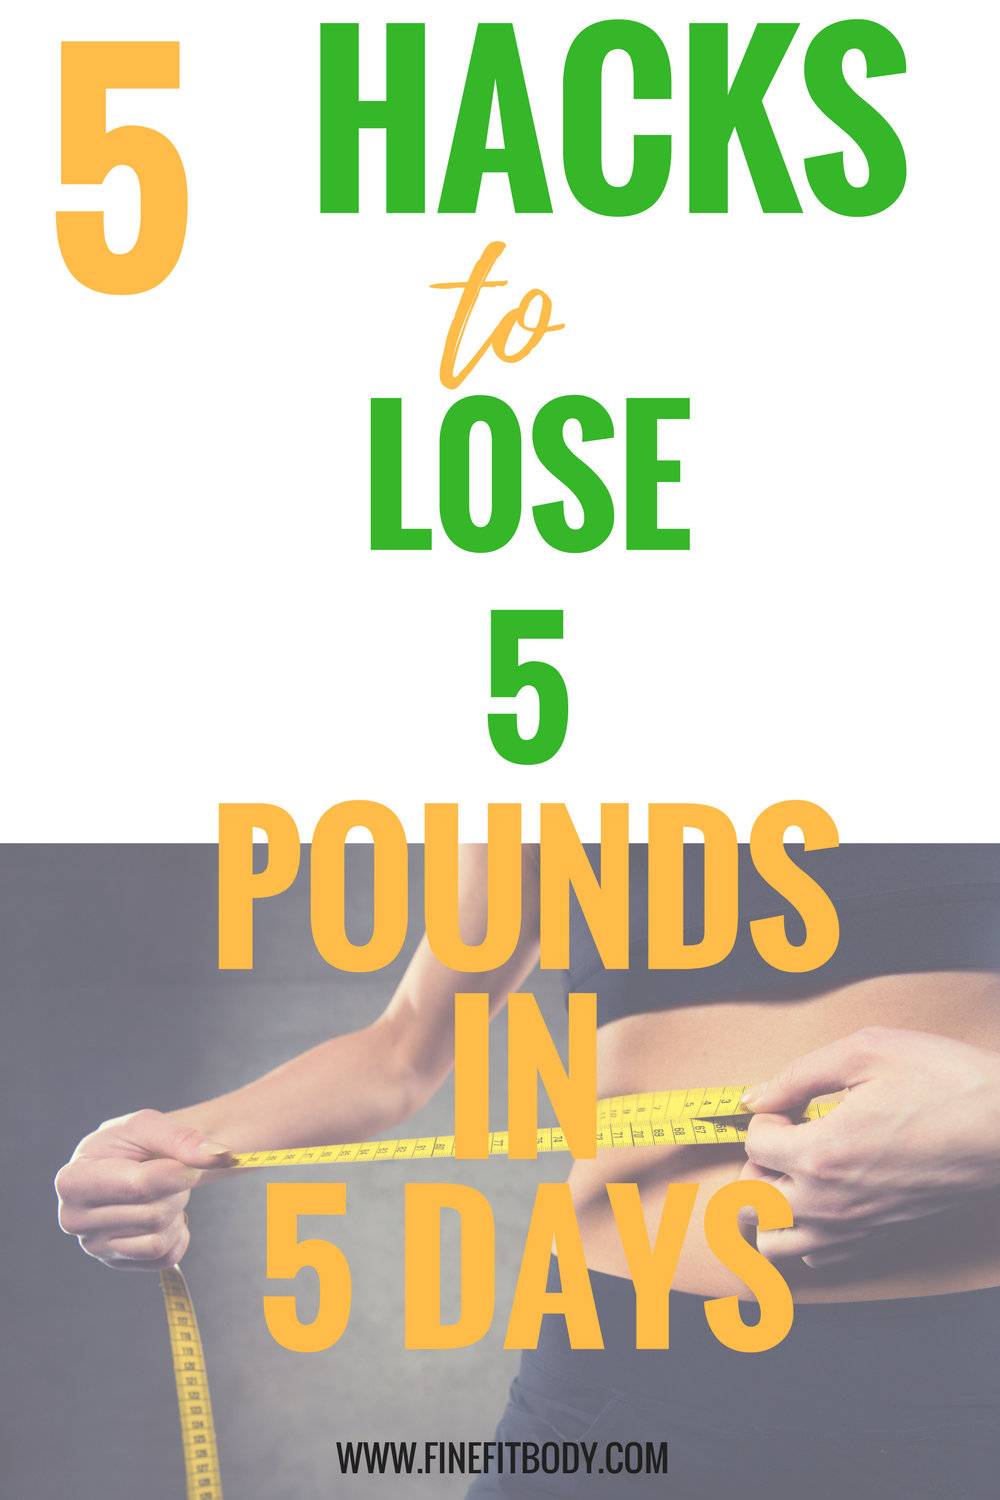 Wow, I love these hacks to lose five pounds in five days without exercise! This will help me lose weight quick!